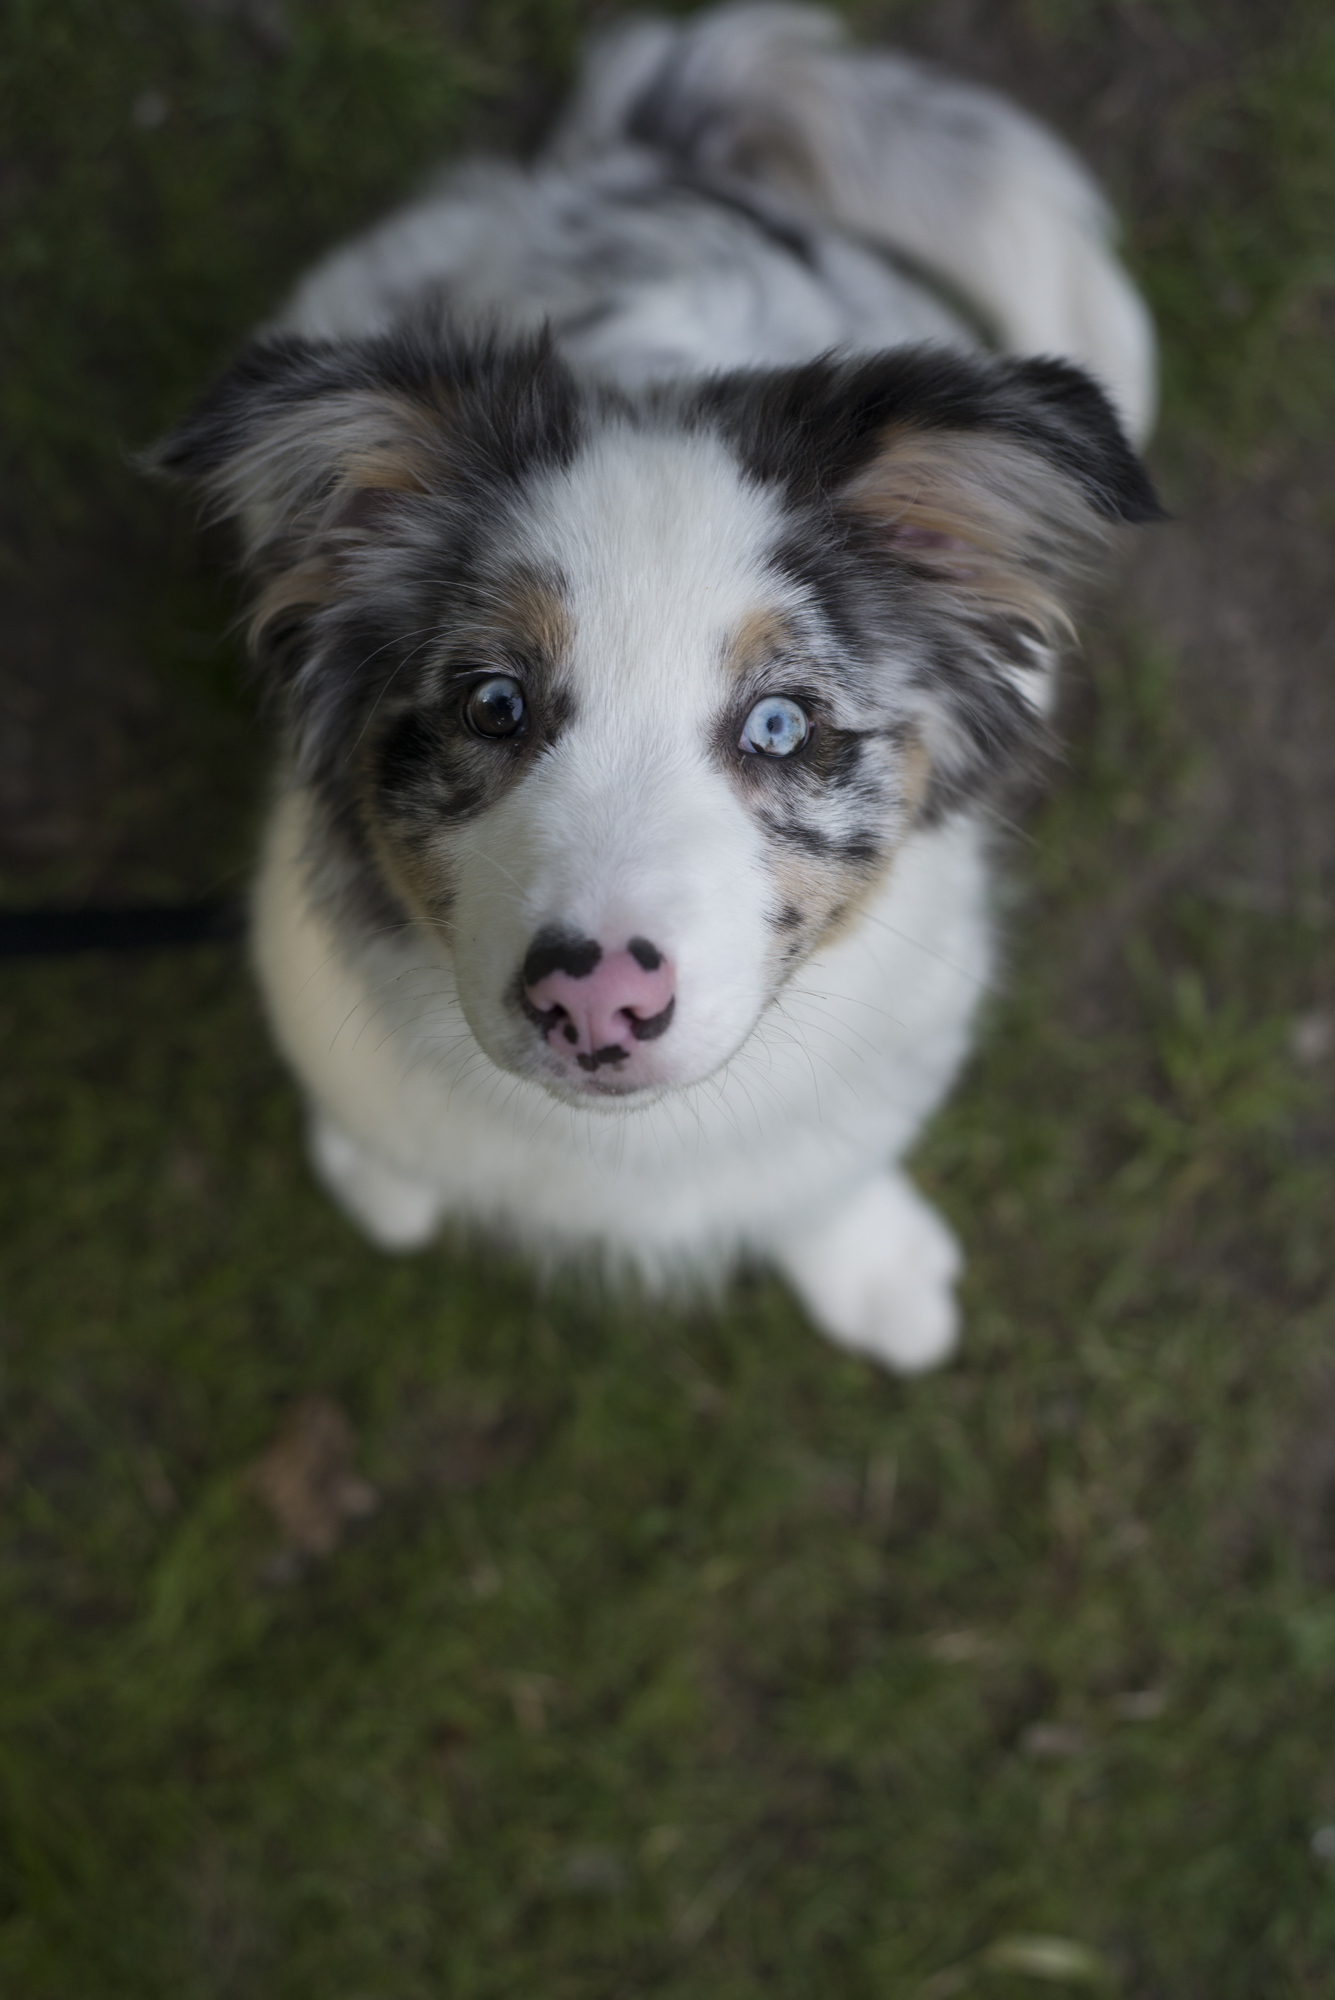 125307 download wallpaper Animals, Australian Shepherd, Dog, Puppy, Nice, Sweetheart, Spotted, Spotty screensavers and pictures for free